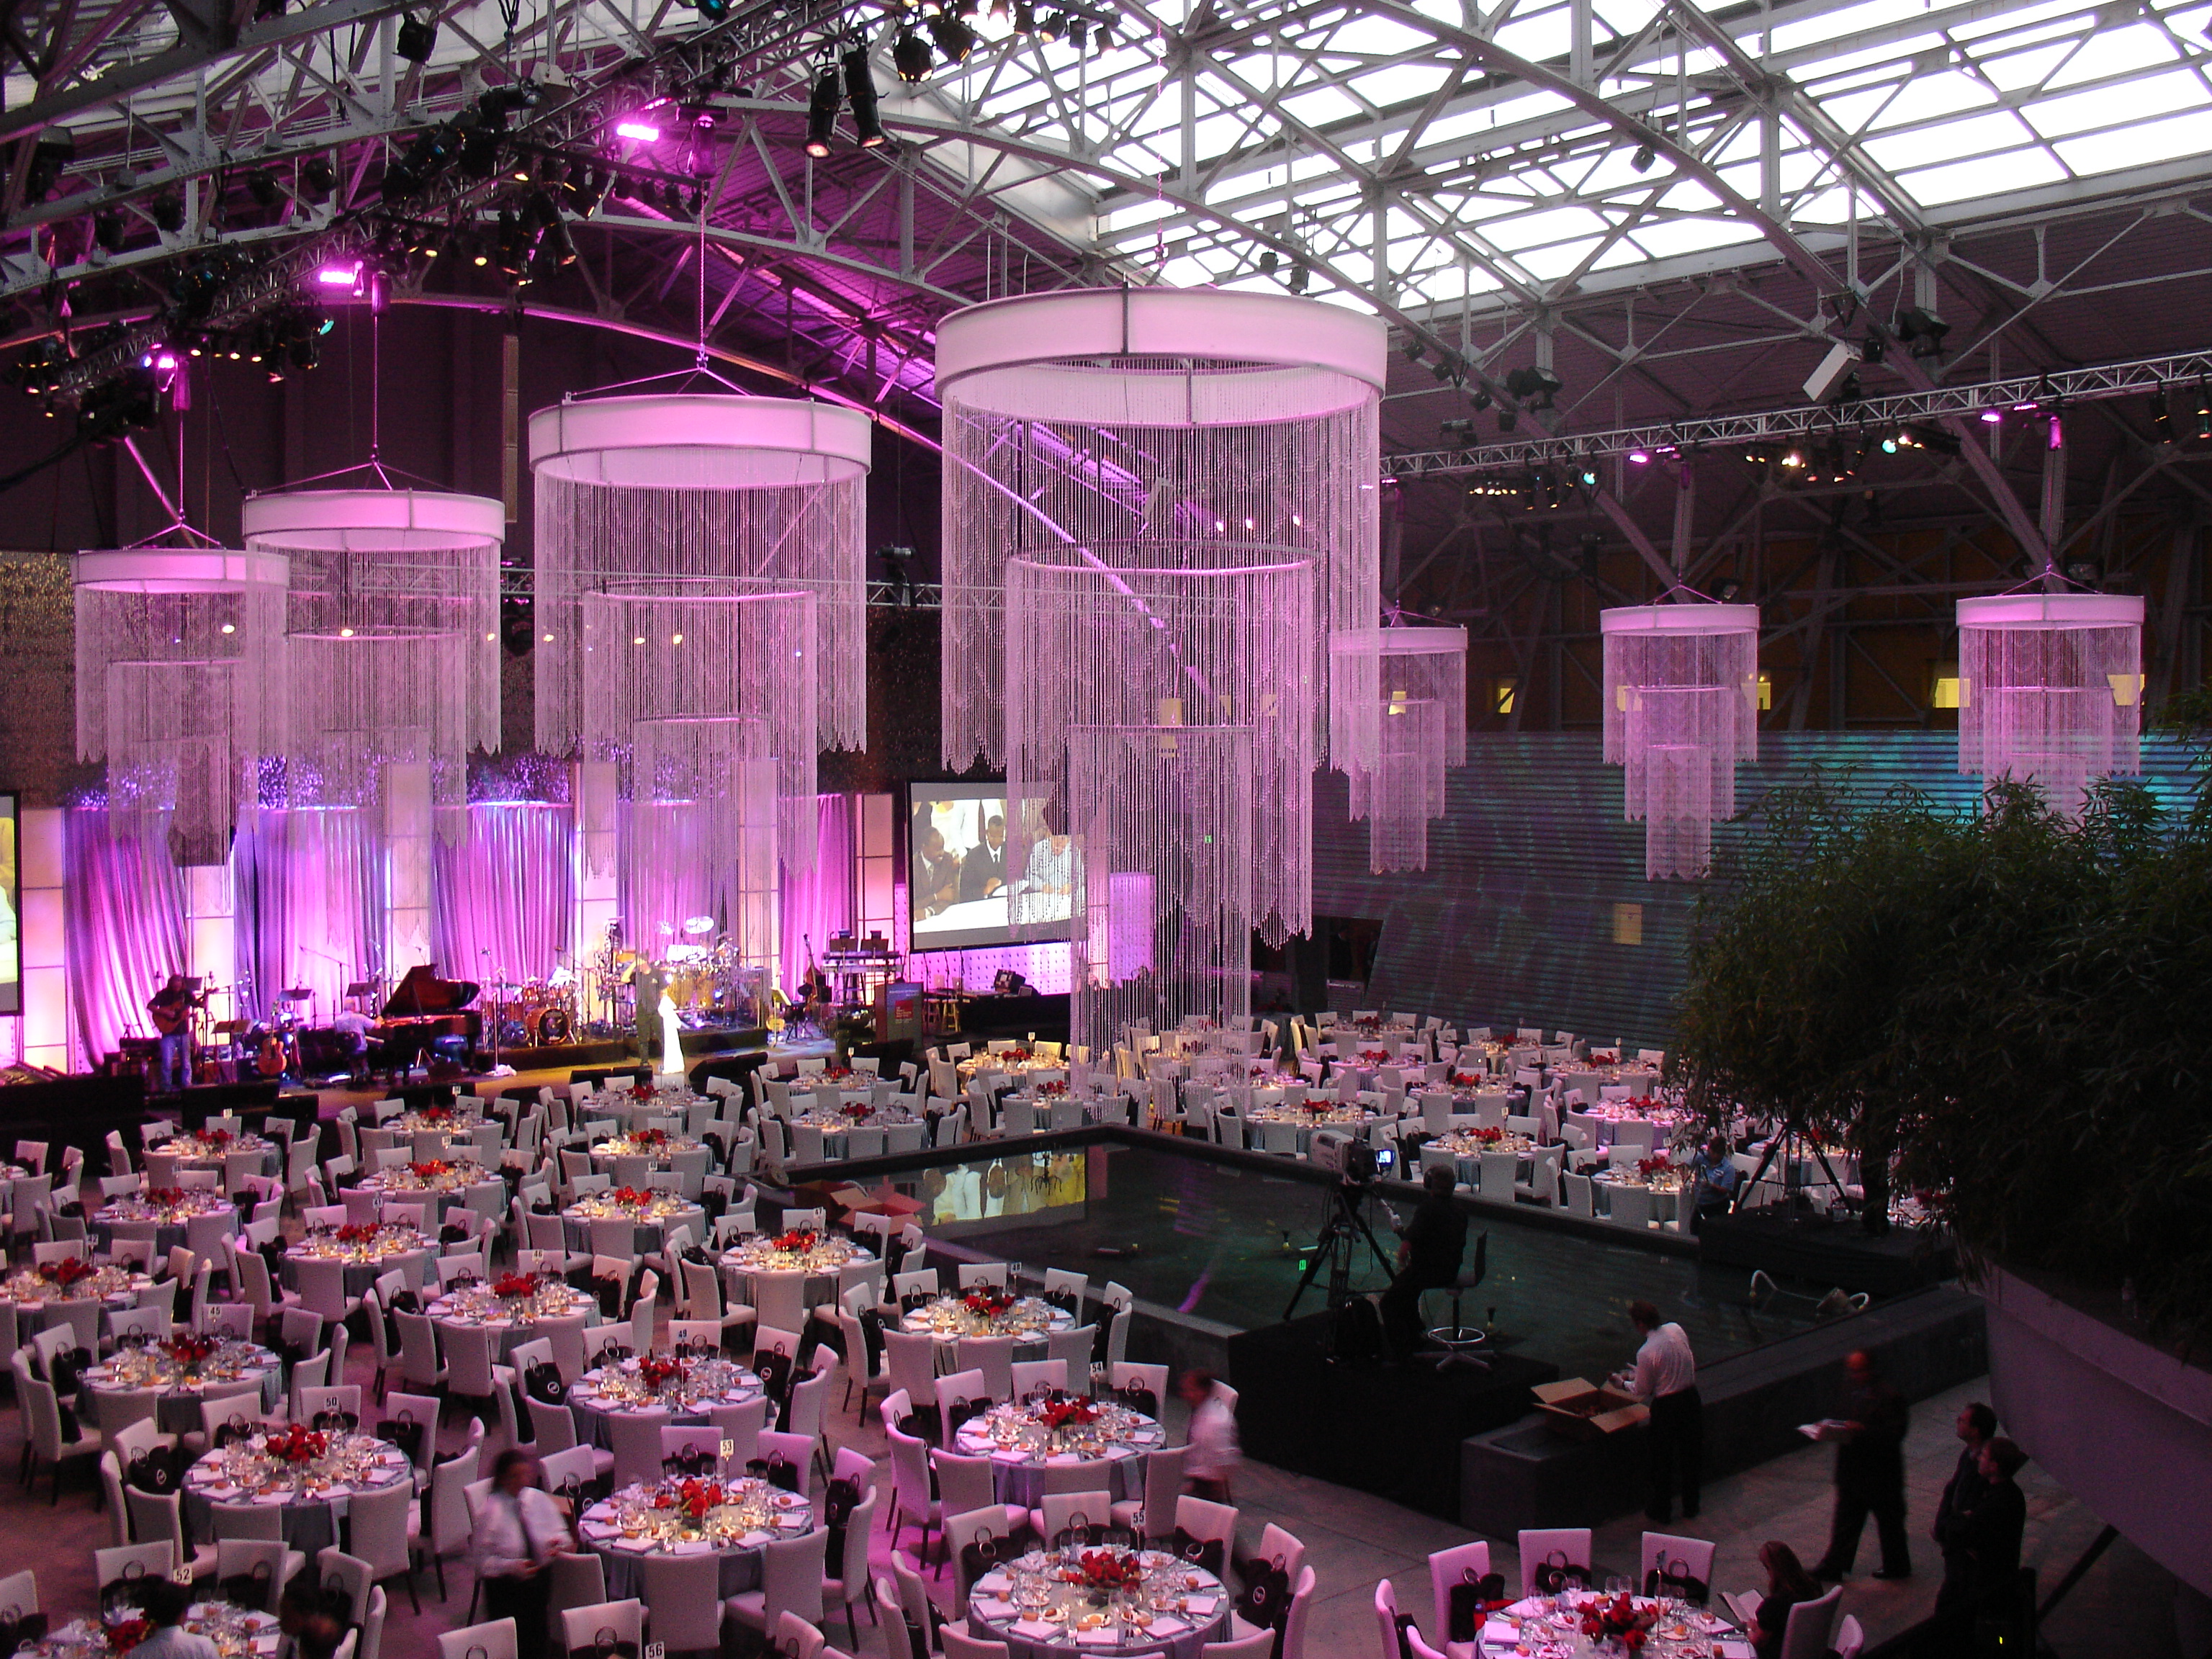 Purple Hued Wallis Annenberg Building Big Lab with hanging chandeliers and seated dinner